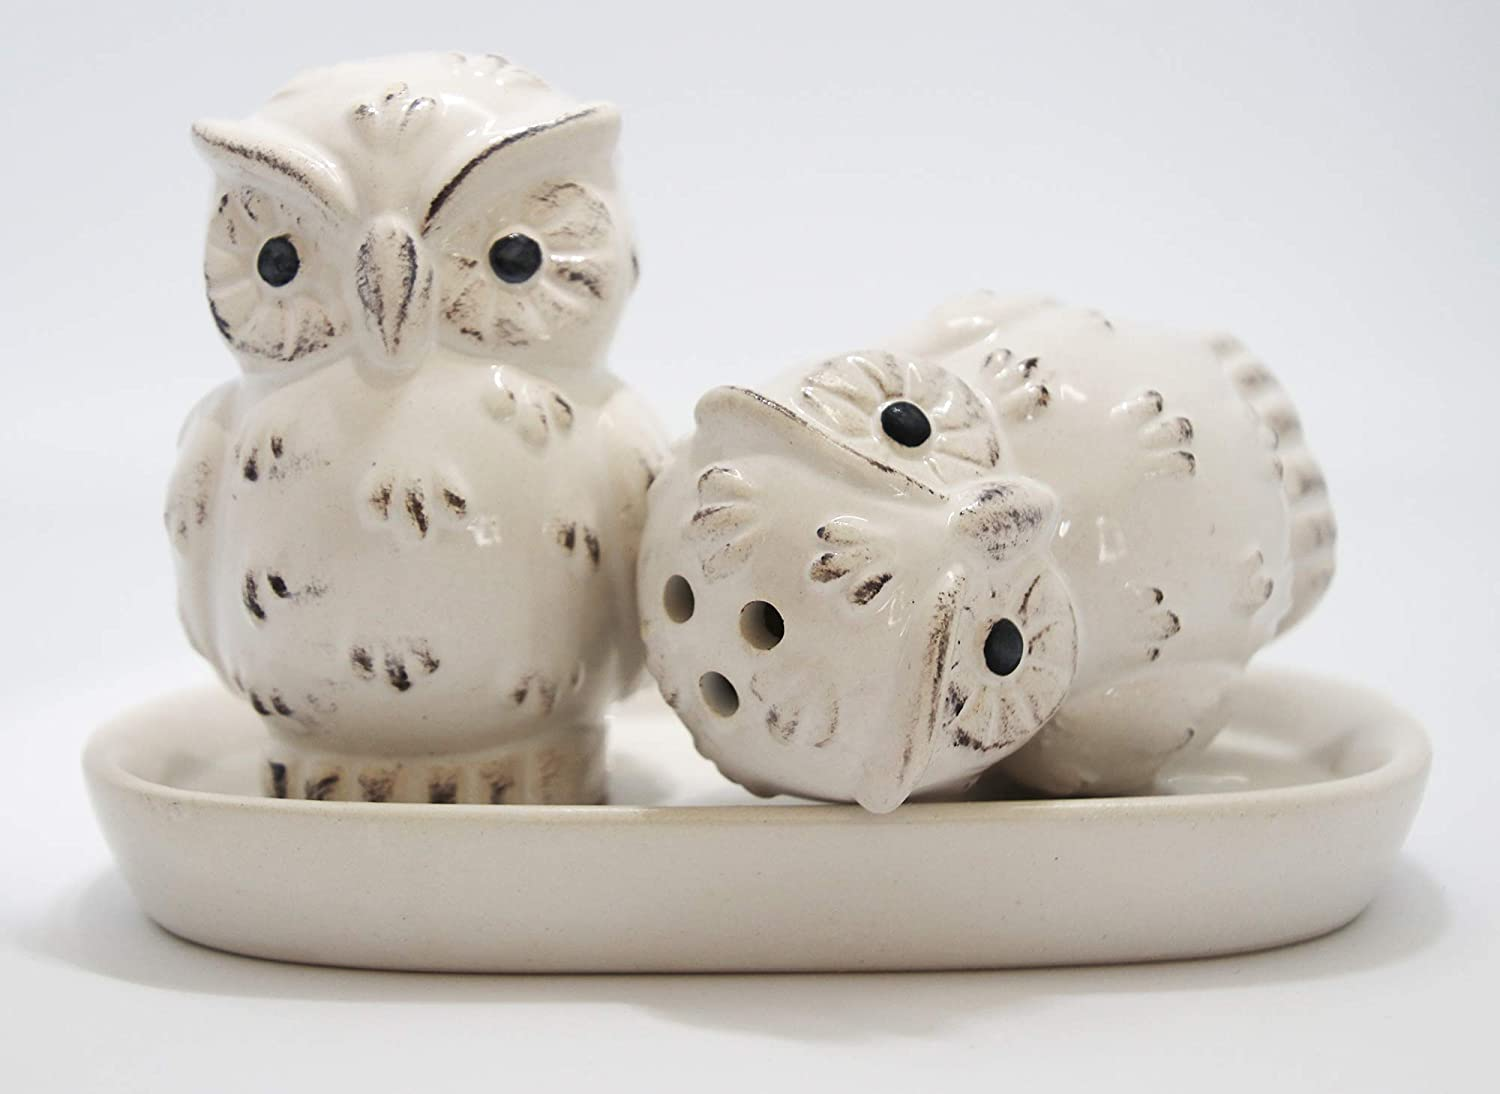 Salt Pepper 3 Piece Owl And Shaker With Tray Brown Wedding Favours Bird Theme House Warming Boxed Set Perfect For Gifts Great Collectors Restaurant Kitchen Decor